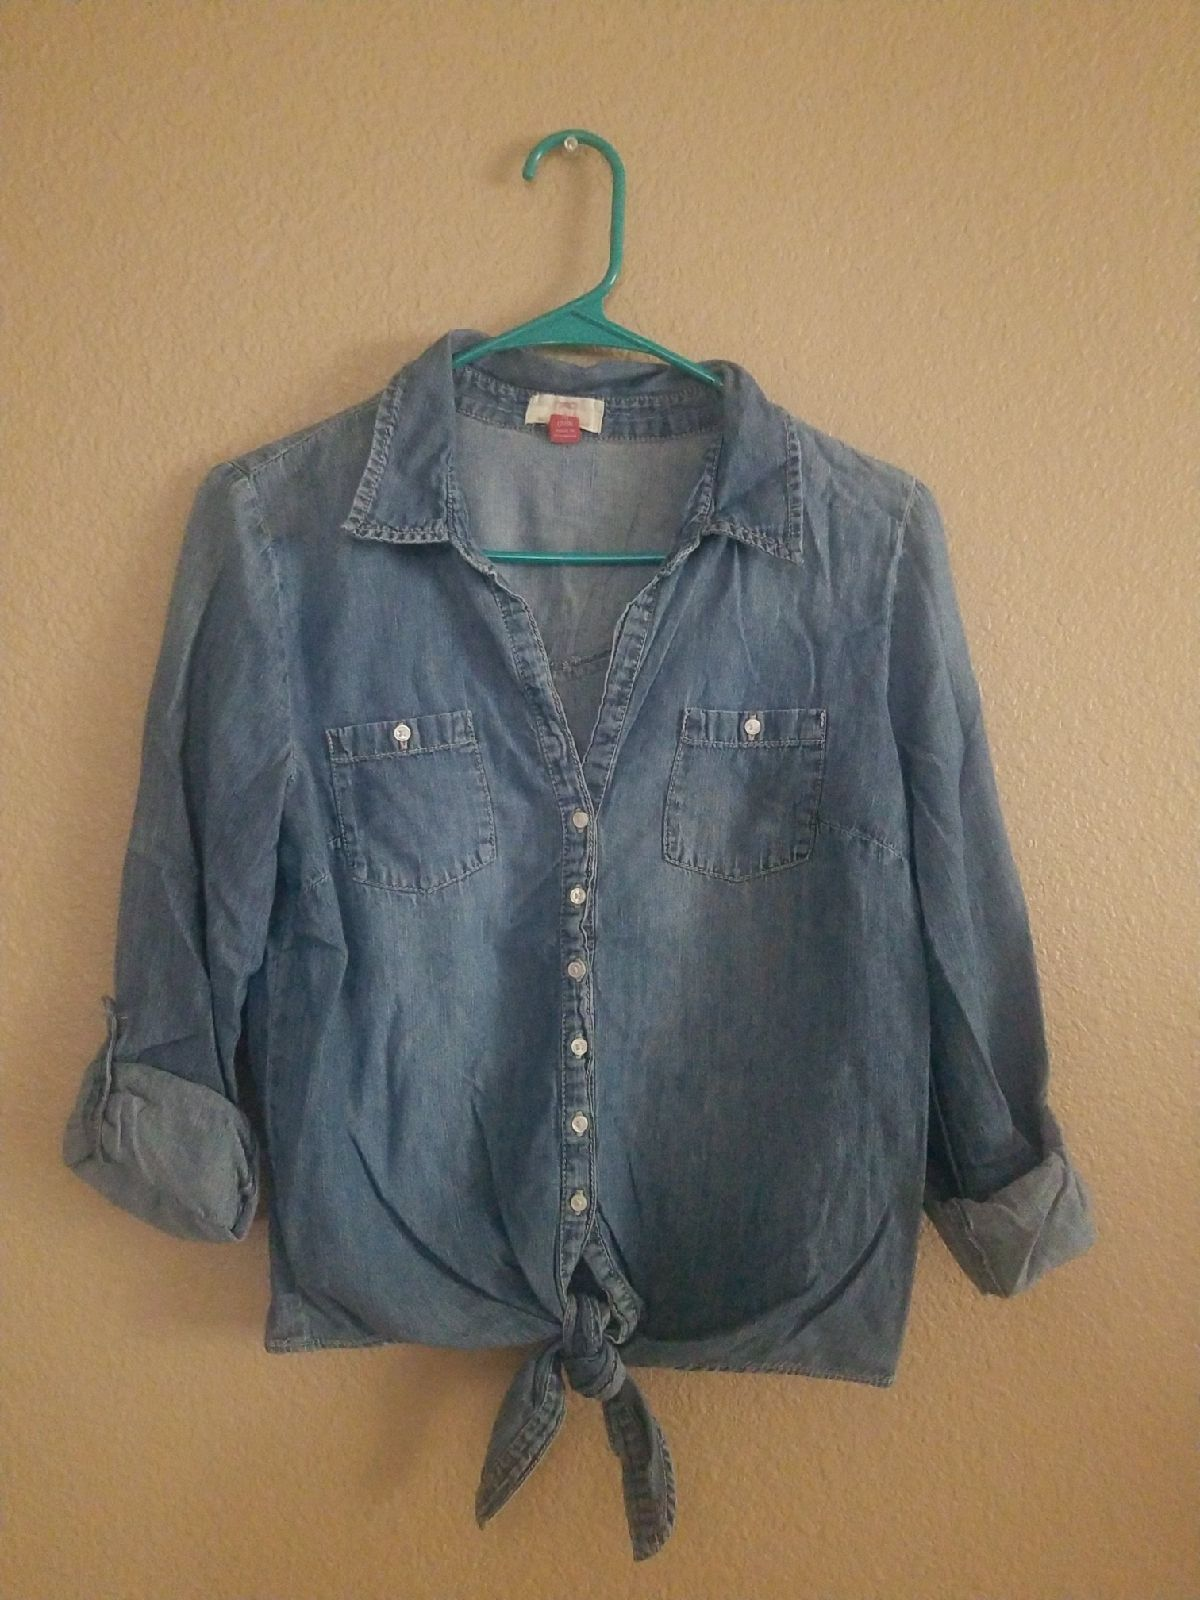 Cute Denim shirt with tie knot sz MED